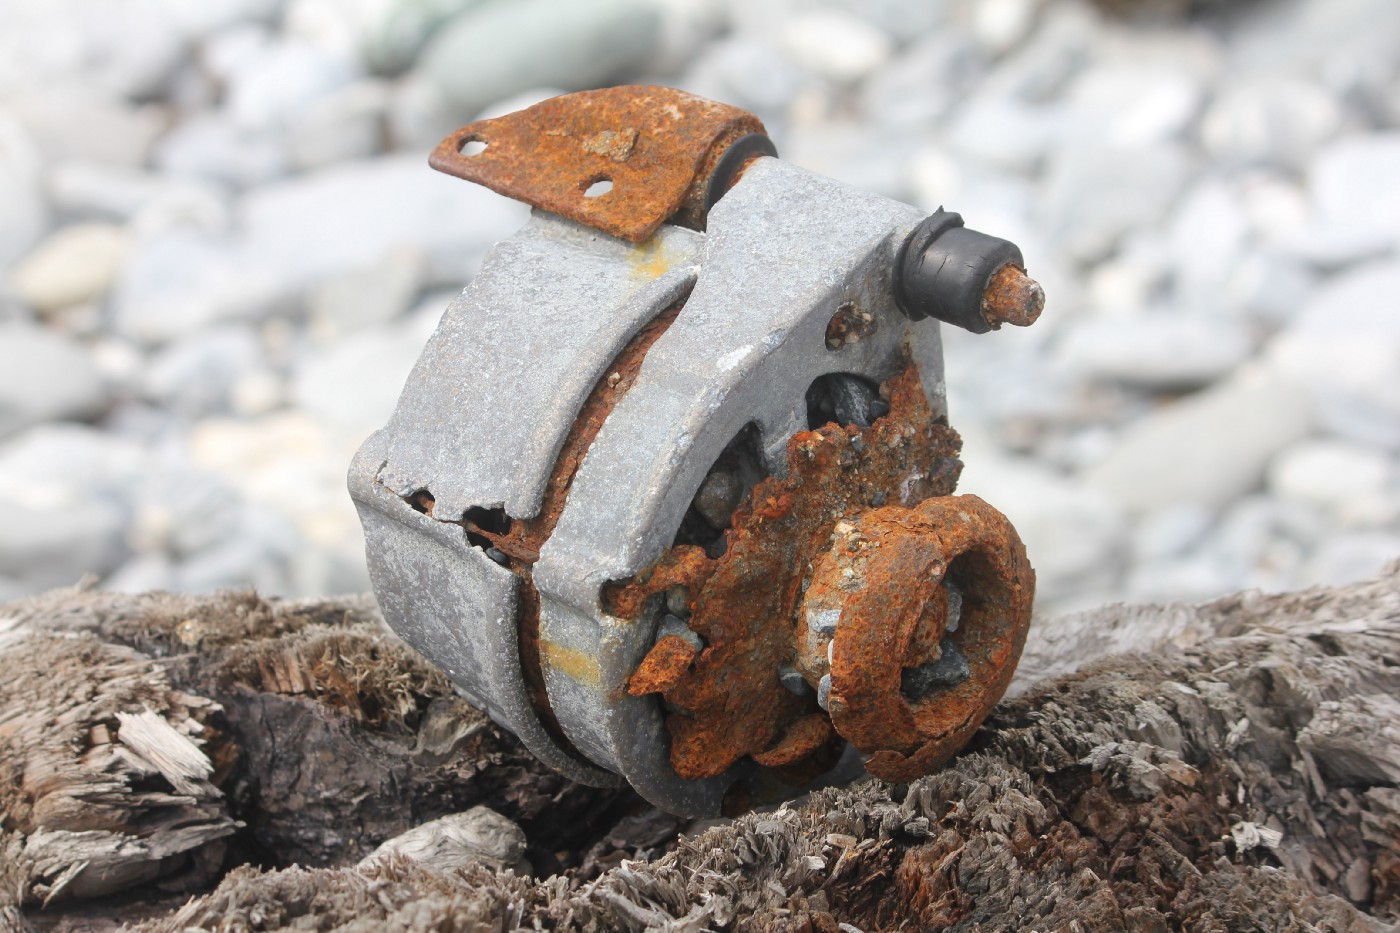 a rust-covered machinery part sitting on rocks